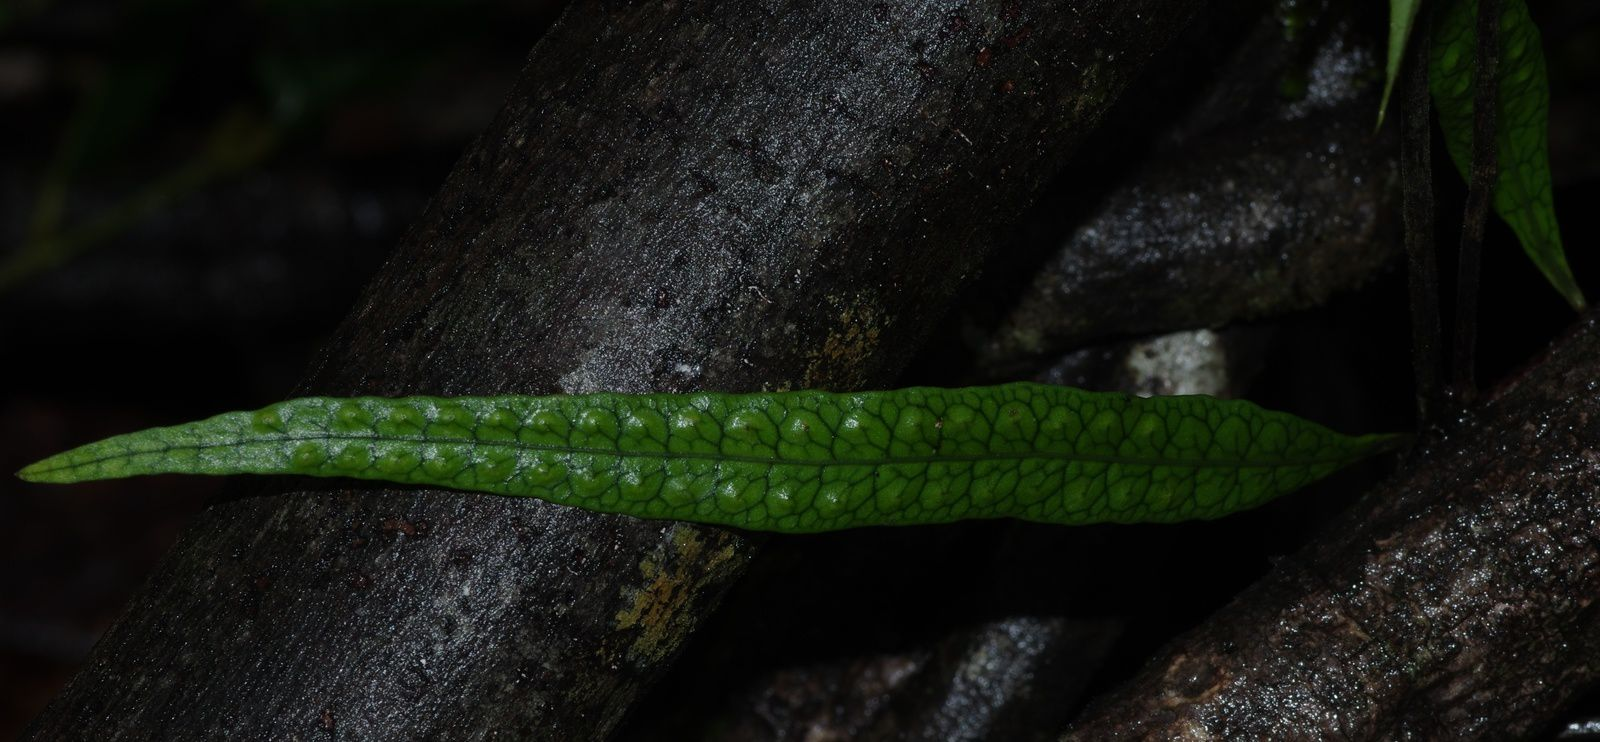 Microgramma lycopodioides